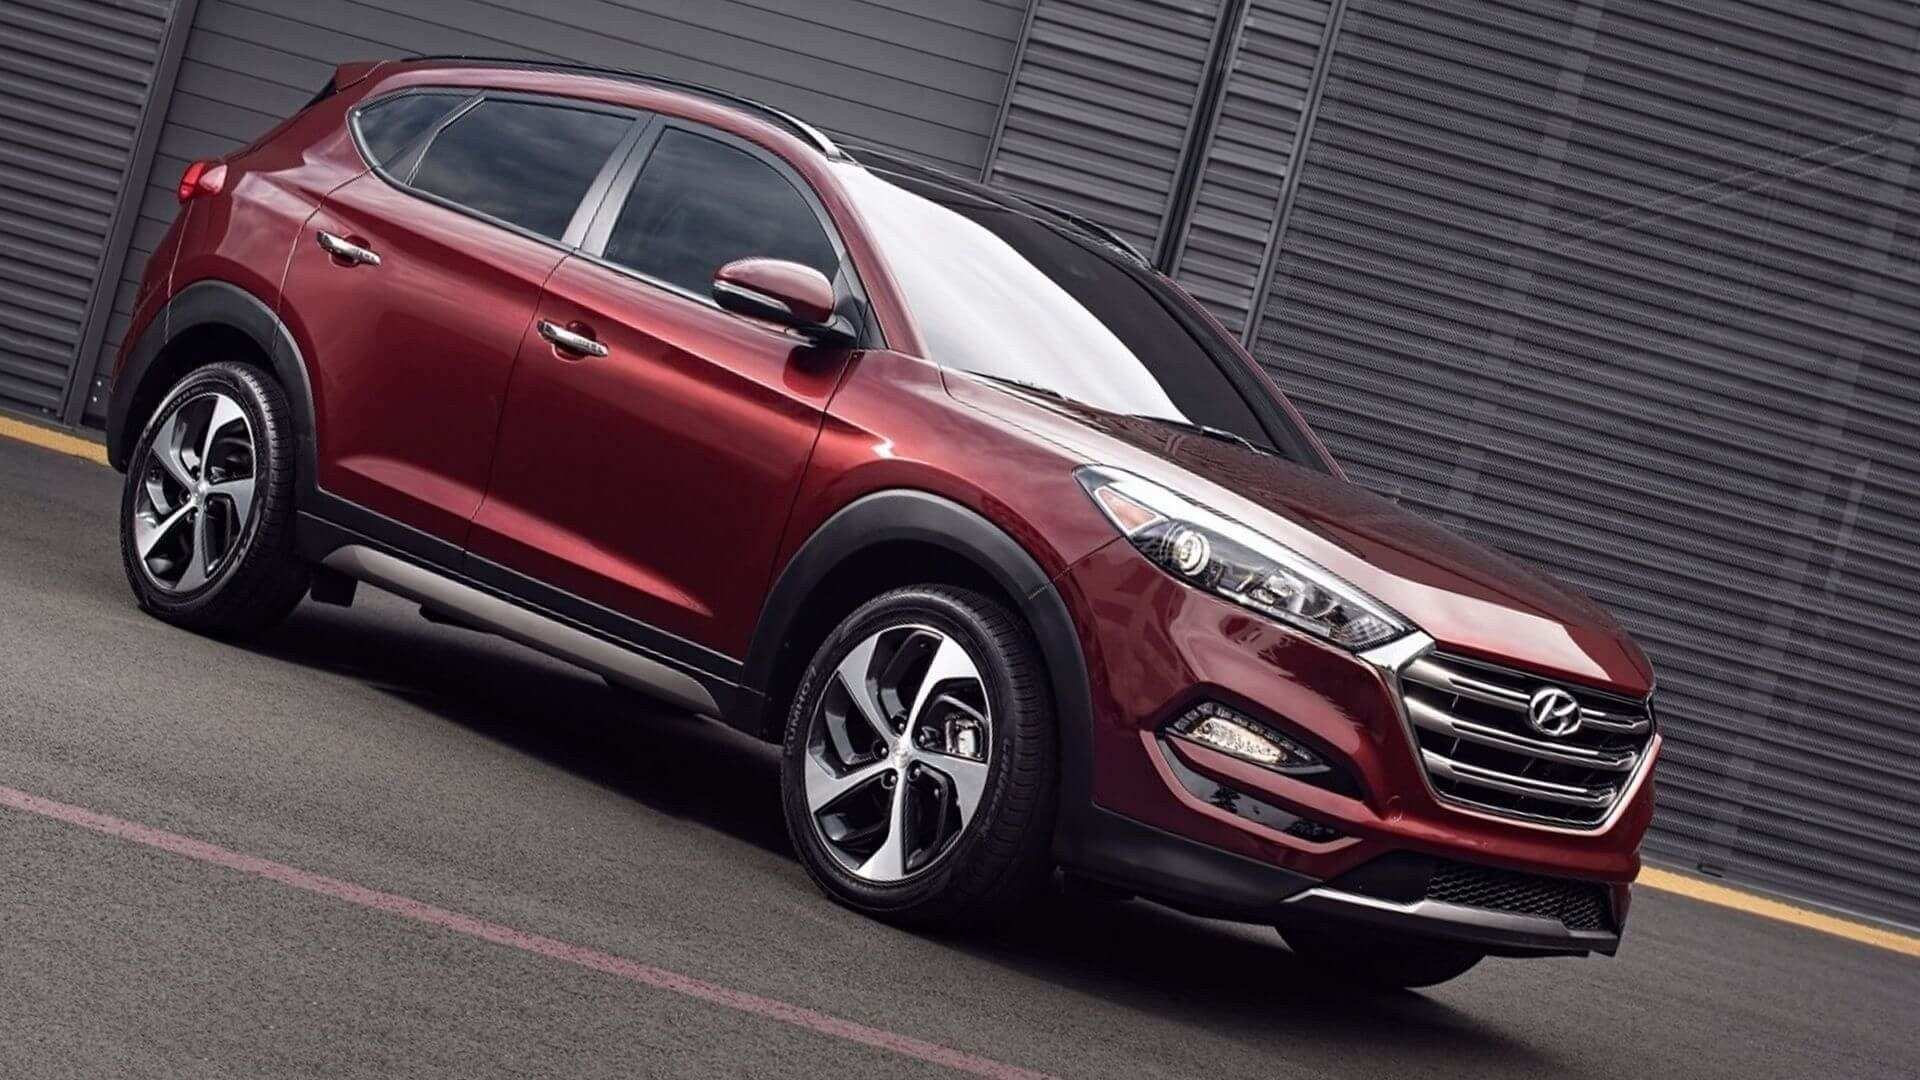 2020 Hyundai Tucson Release Date | Hyundai Usa News pertaining to 2021 Hyundai Tucson White, Specification, Premier Feature, Price